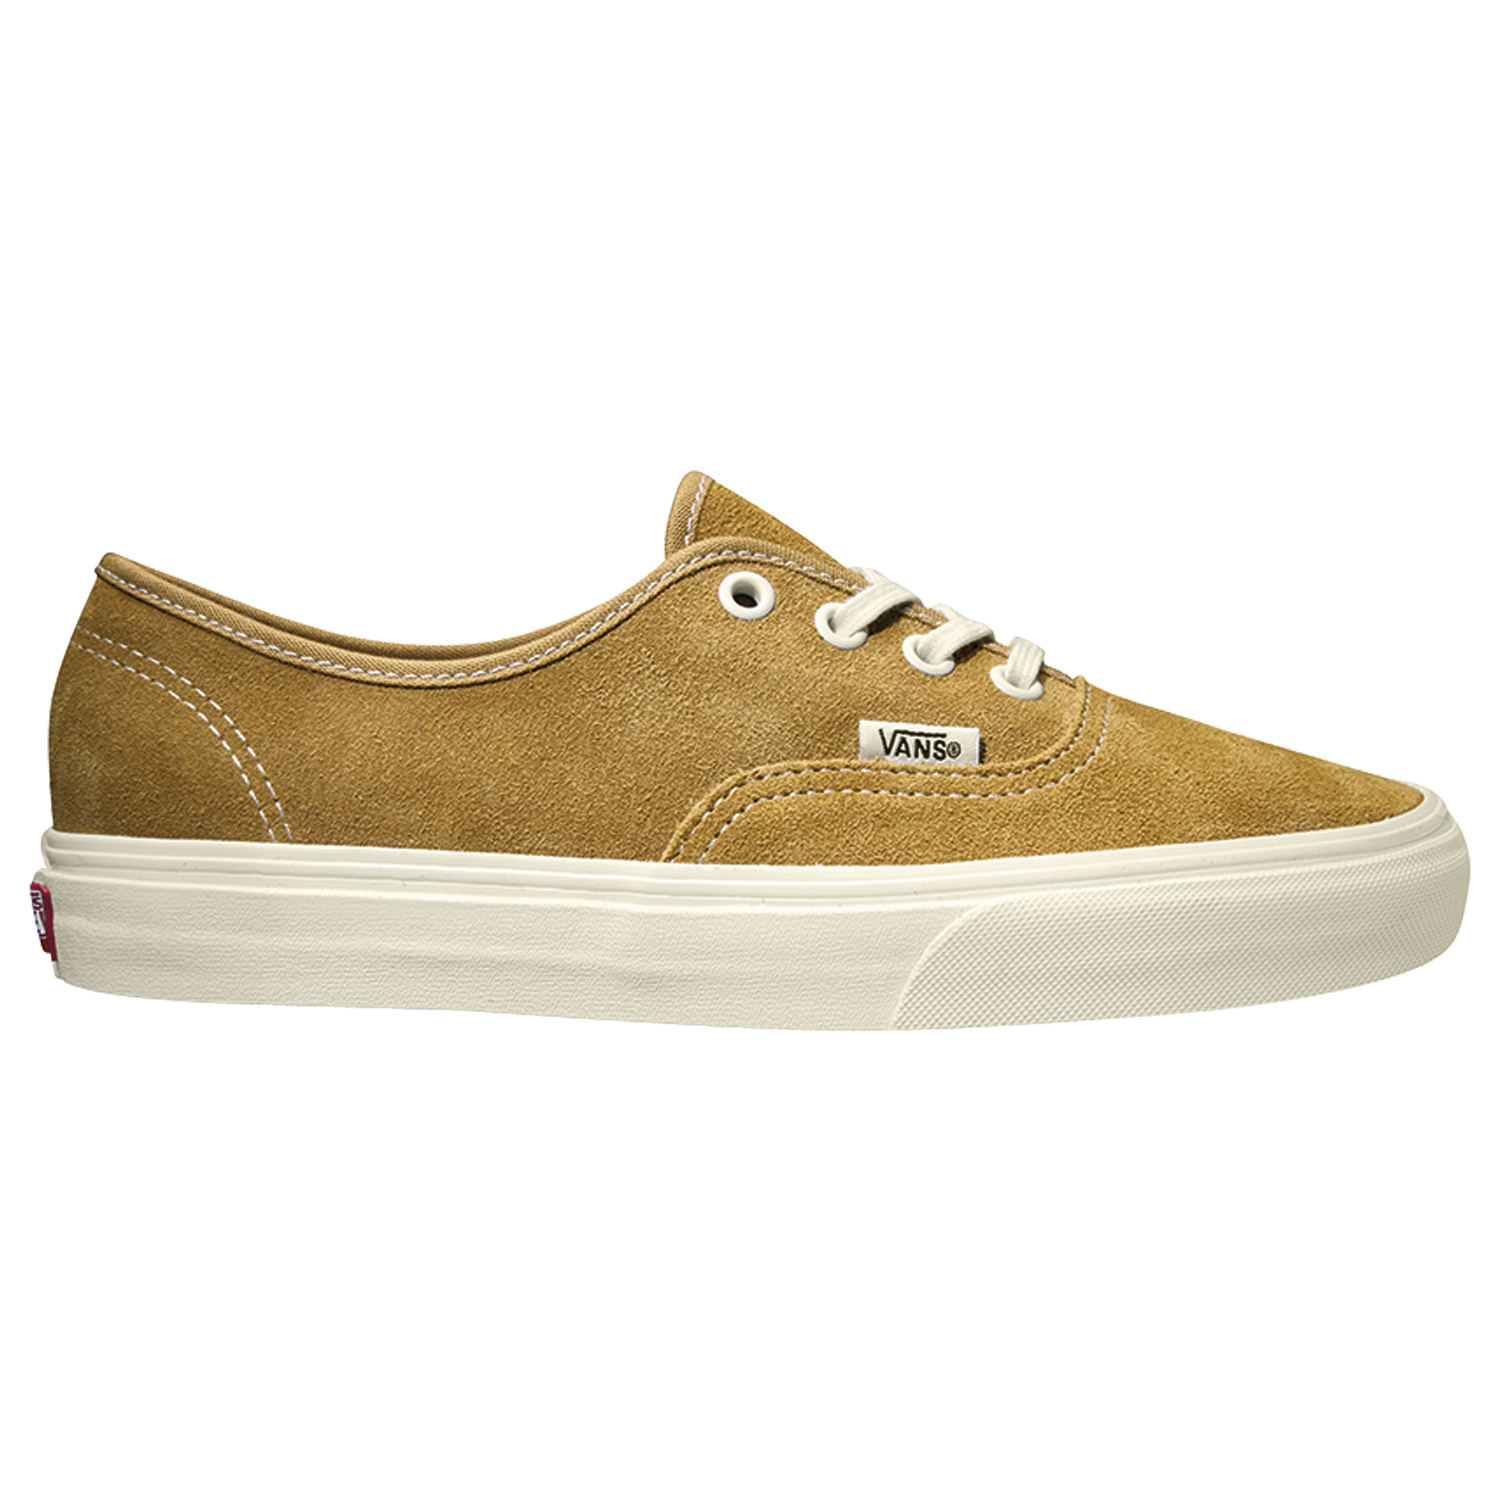 vans-authentic-varsity-suede-amber-gold-149-90